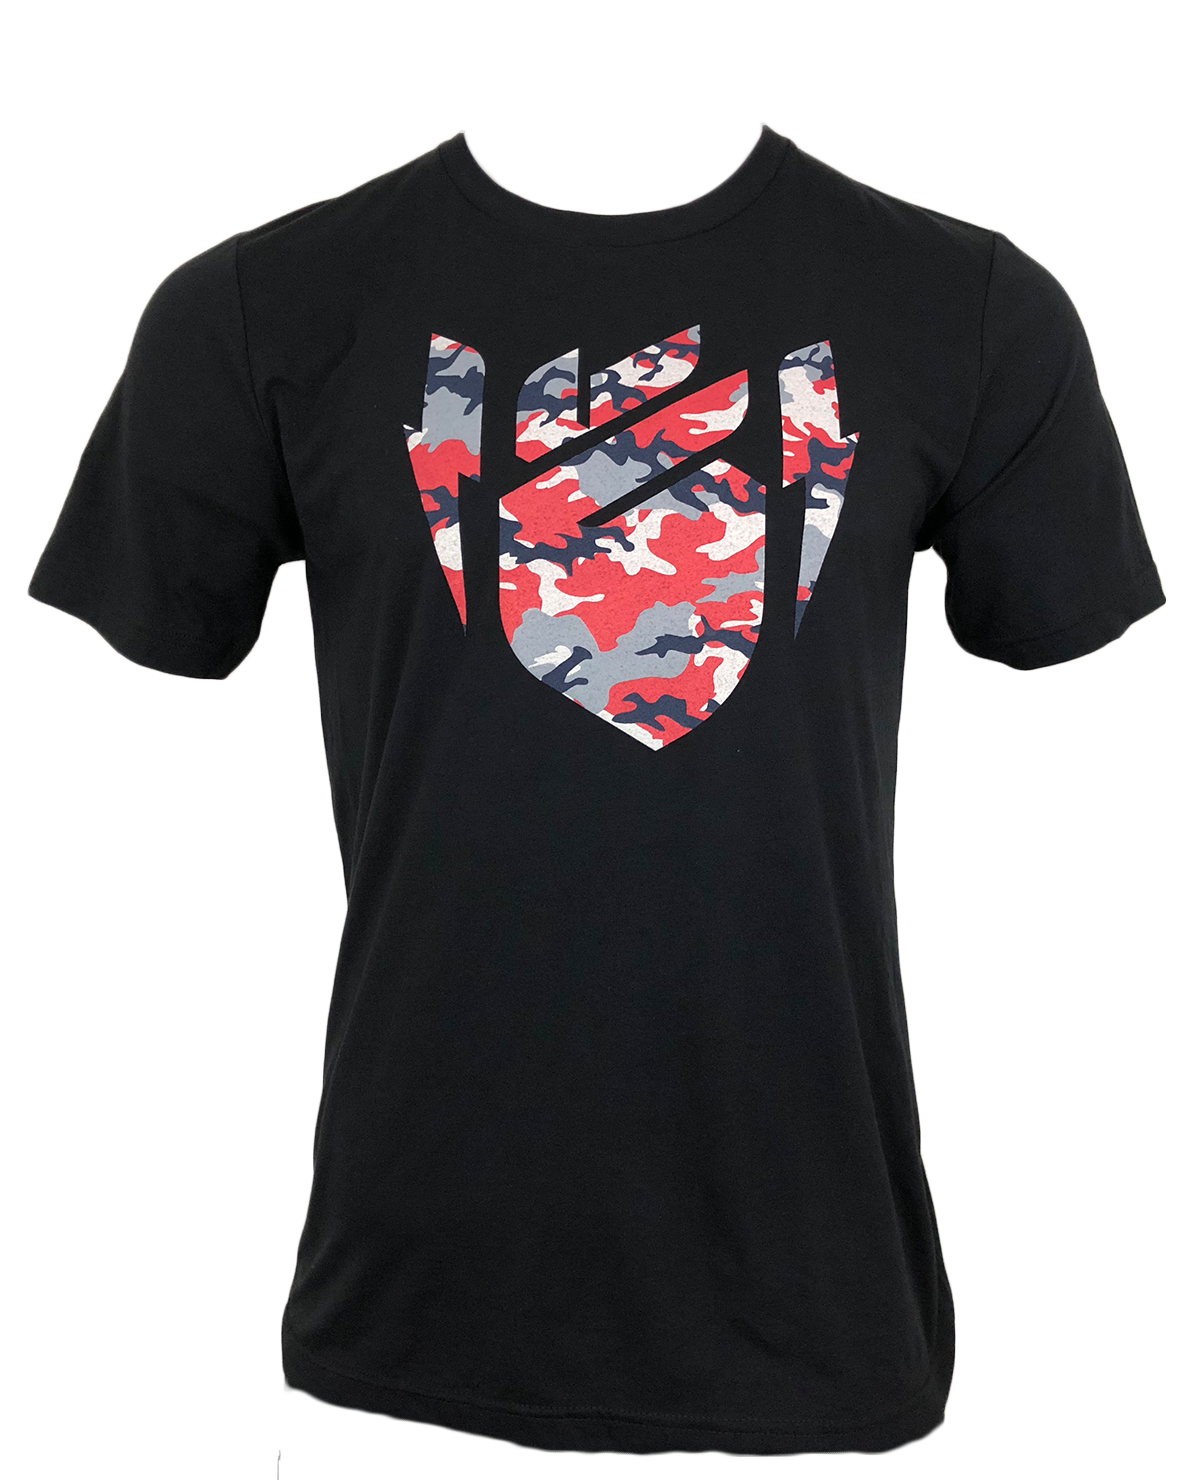 Black/Red Camo Heart